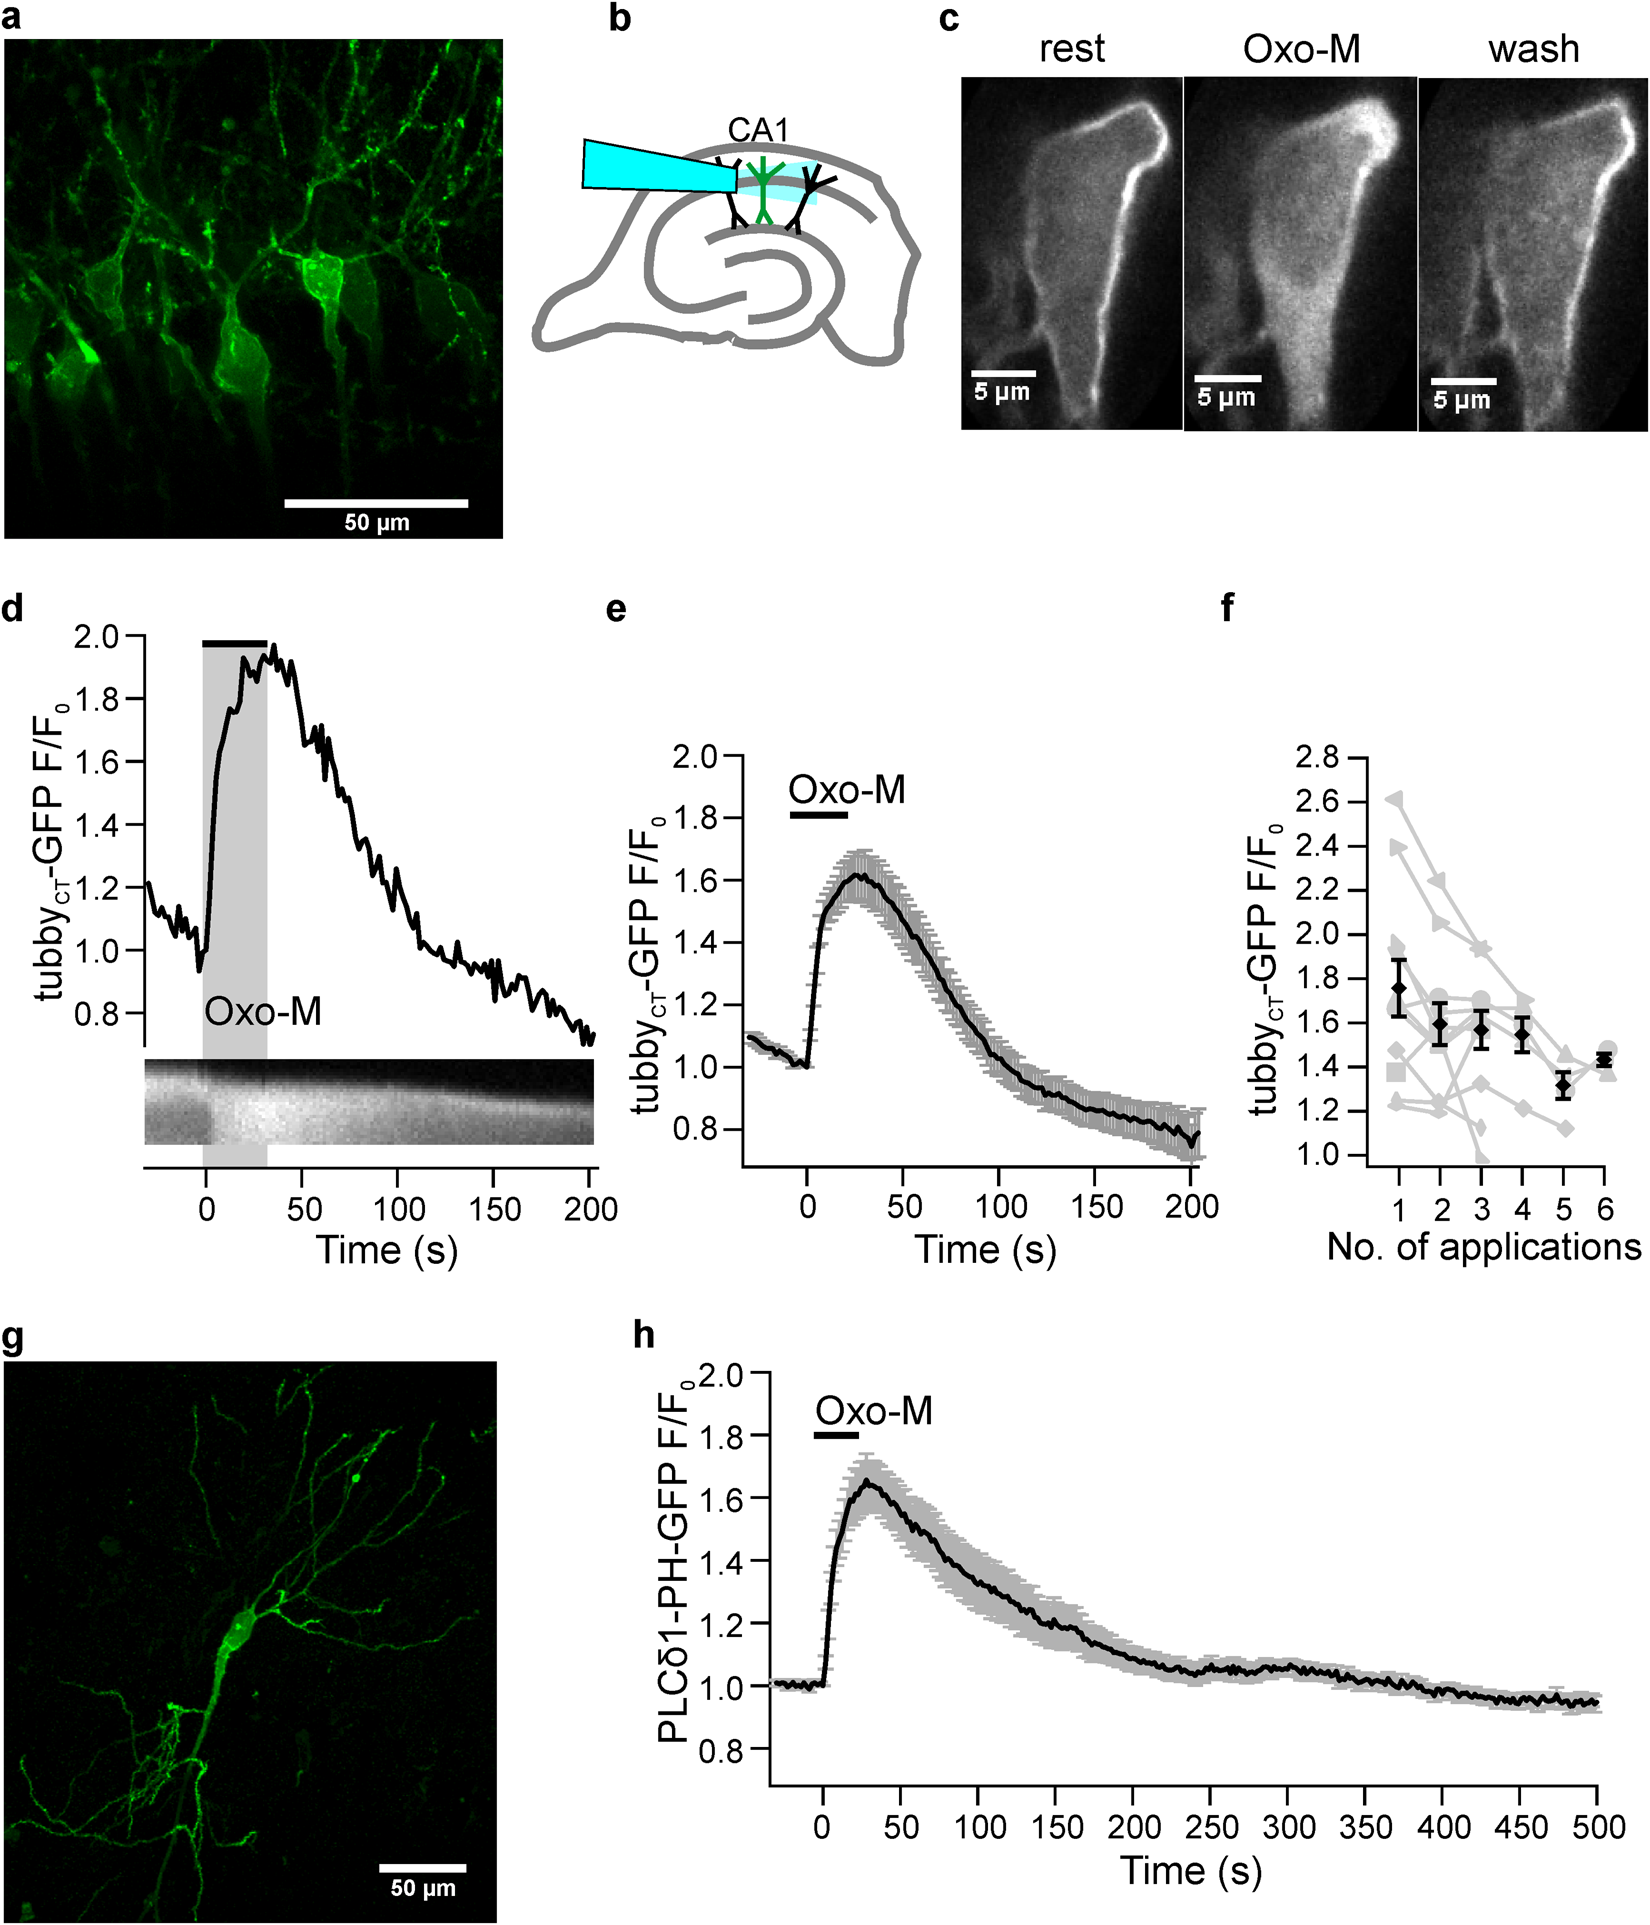 Metabotropic Acetylcholine And Glutamate Receptors Mediate Pi45p Lightdark Switch With Relay Schematic Diagram Wiring 2 Depletion Oscillations In Hippocampal Ca1 Pyramidal Neurons Situ Scientific